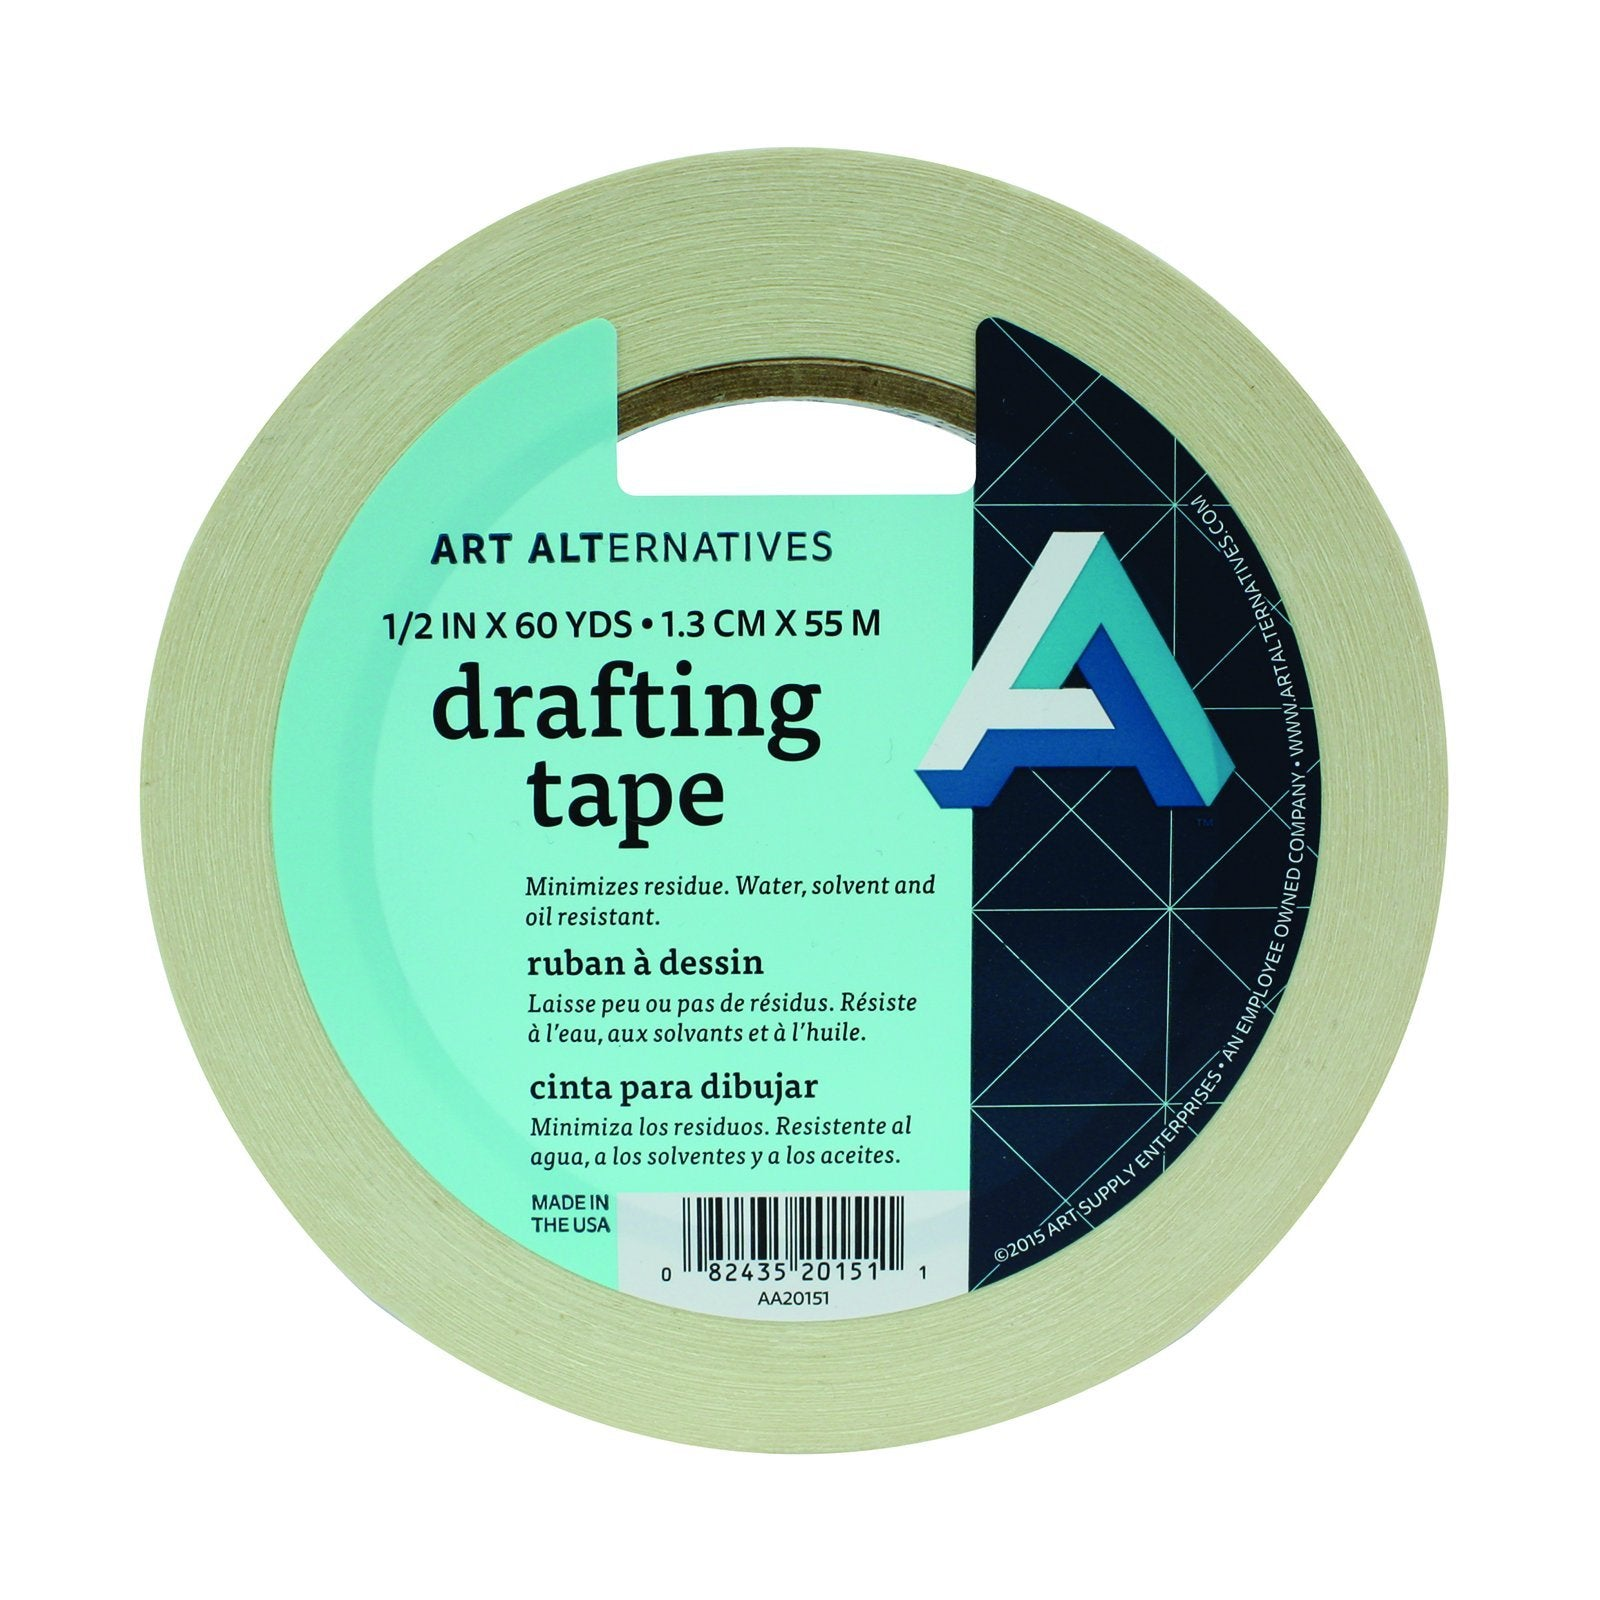 "Art Alternatives Drafting Tape, 1/2"" x 60 yds."